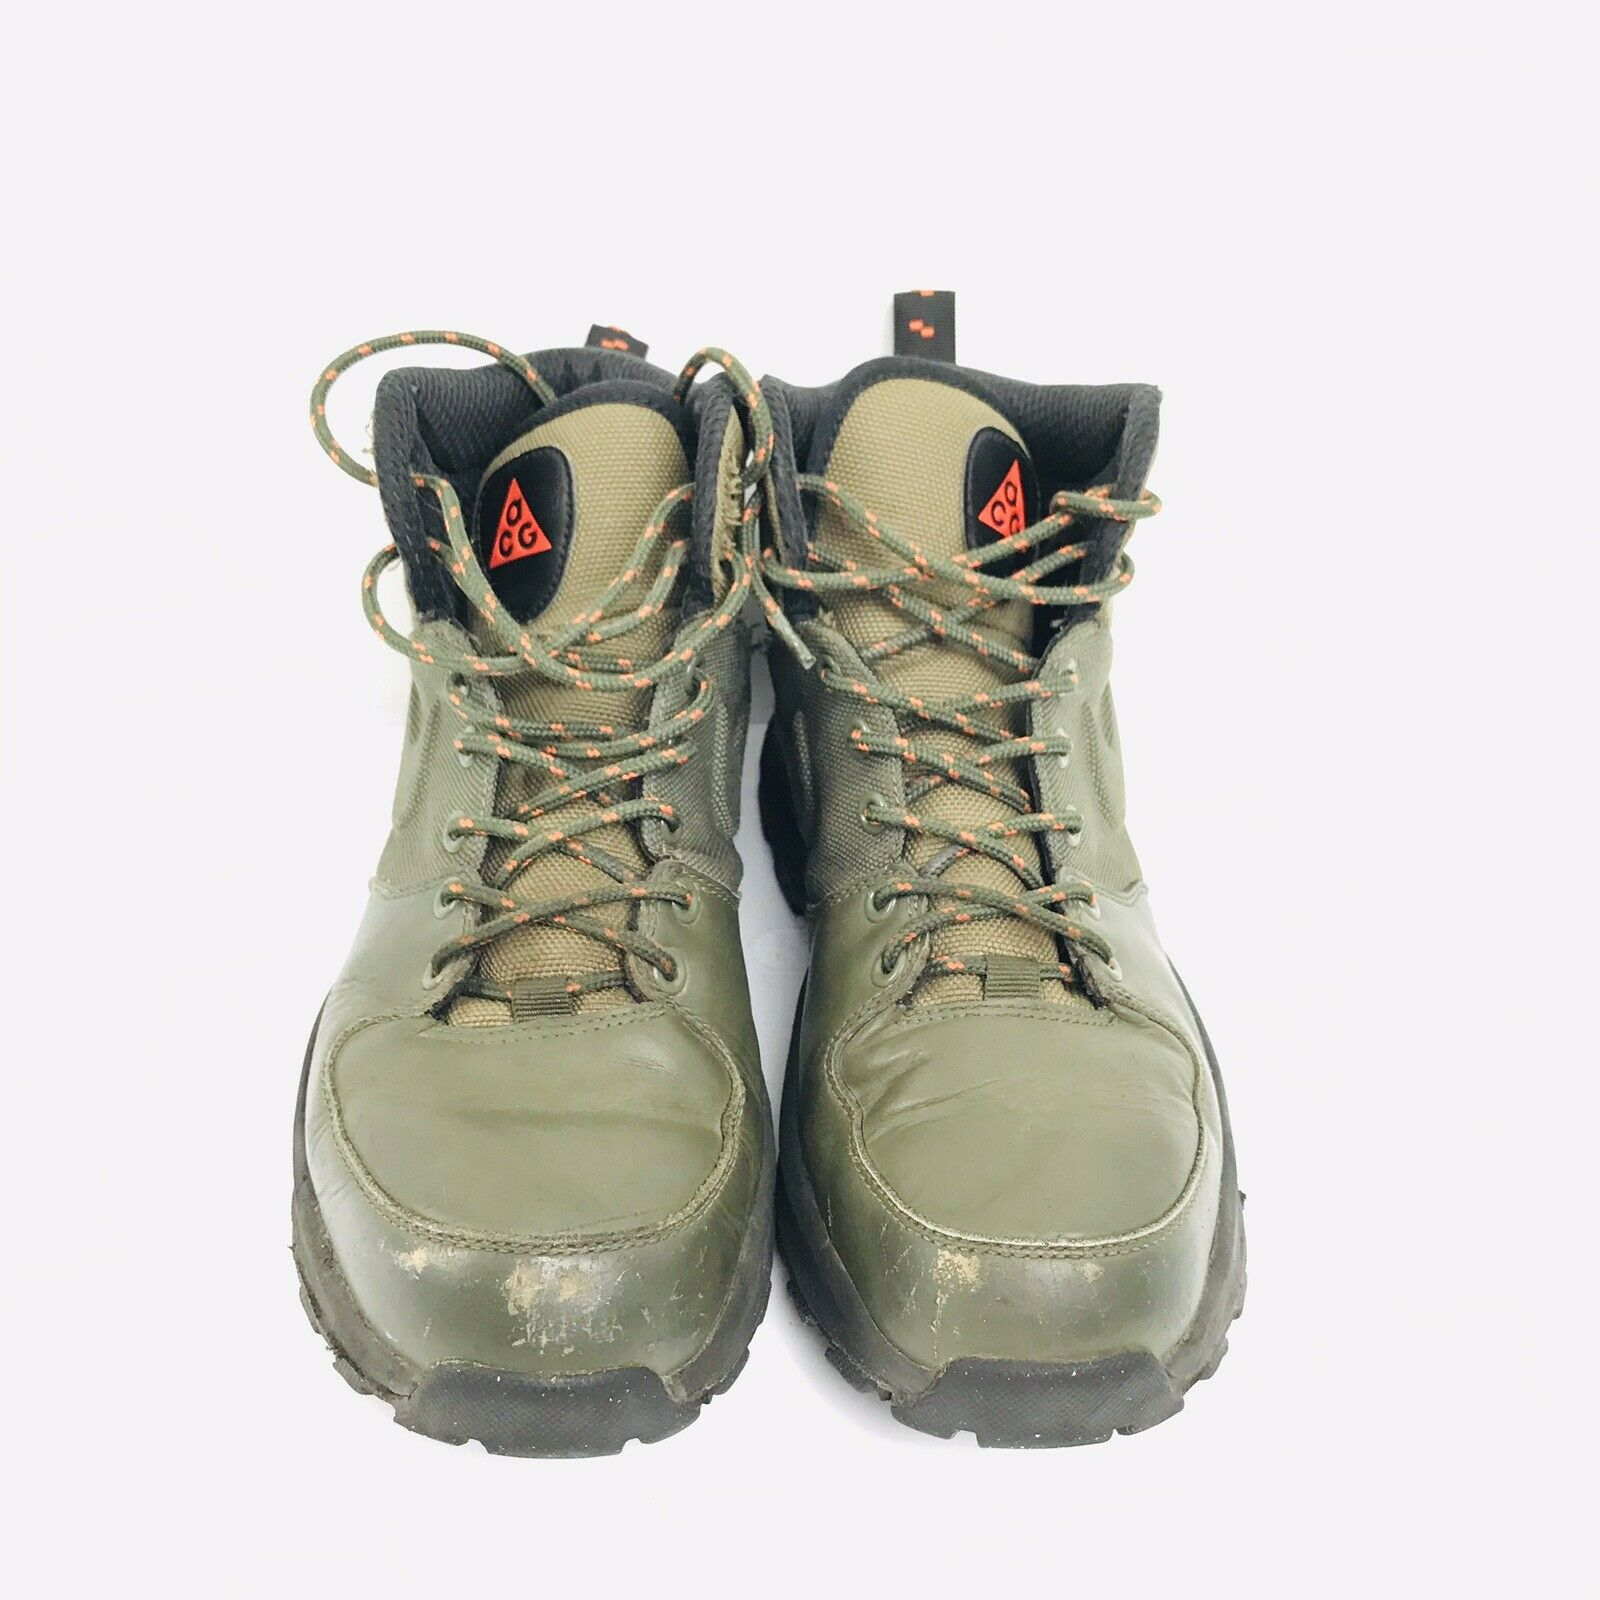 Nike Mens ACG Green Athletic Boot All Conditions Gear Size US 8.5